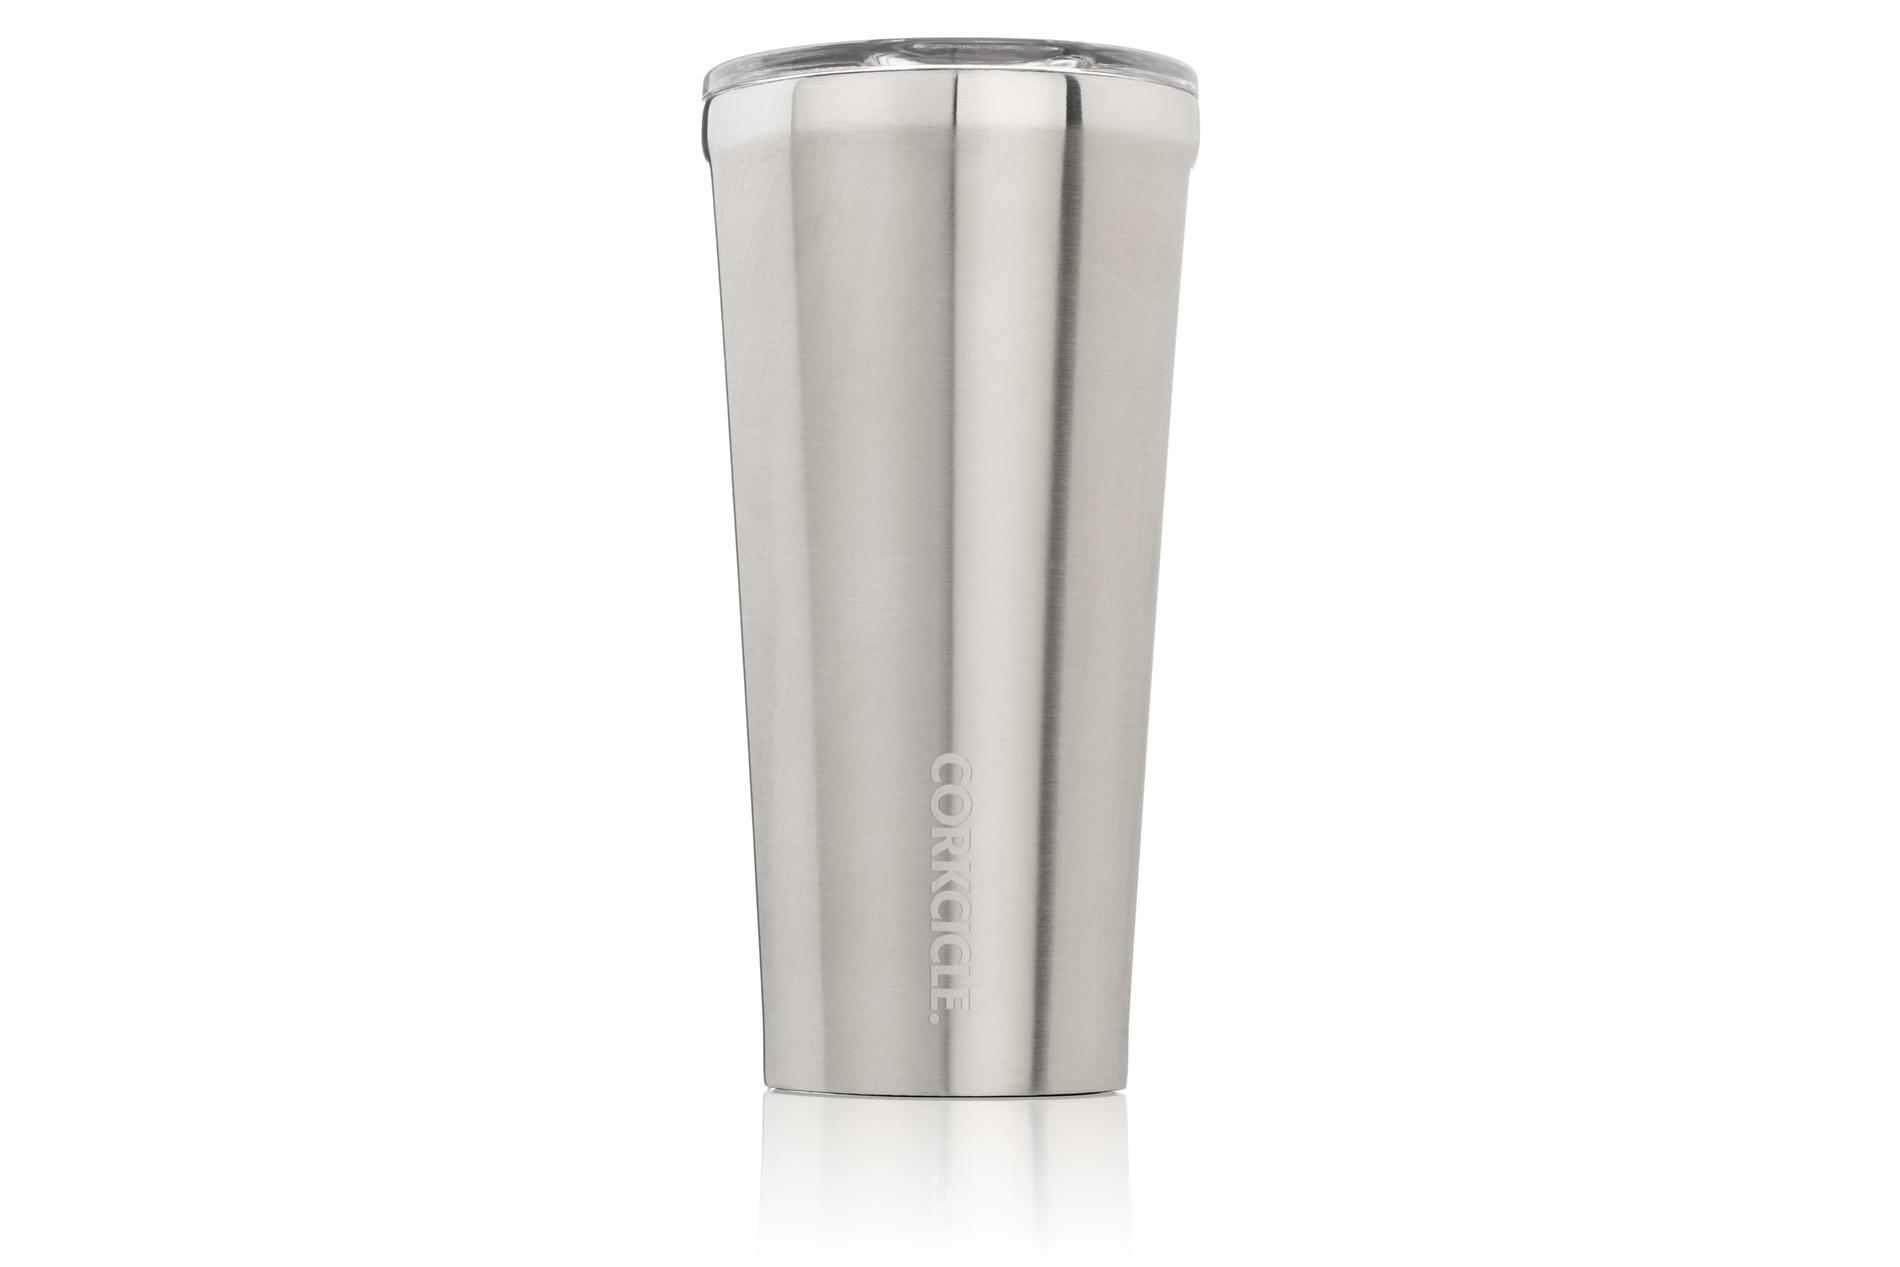 Corkcicle Becher / Thermo Isolierbecher Brushed steel 475 ml Metallic